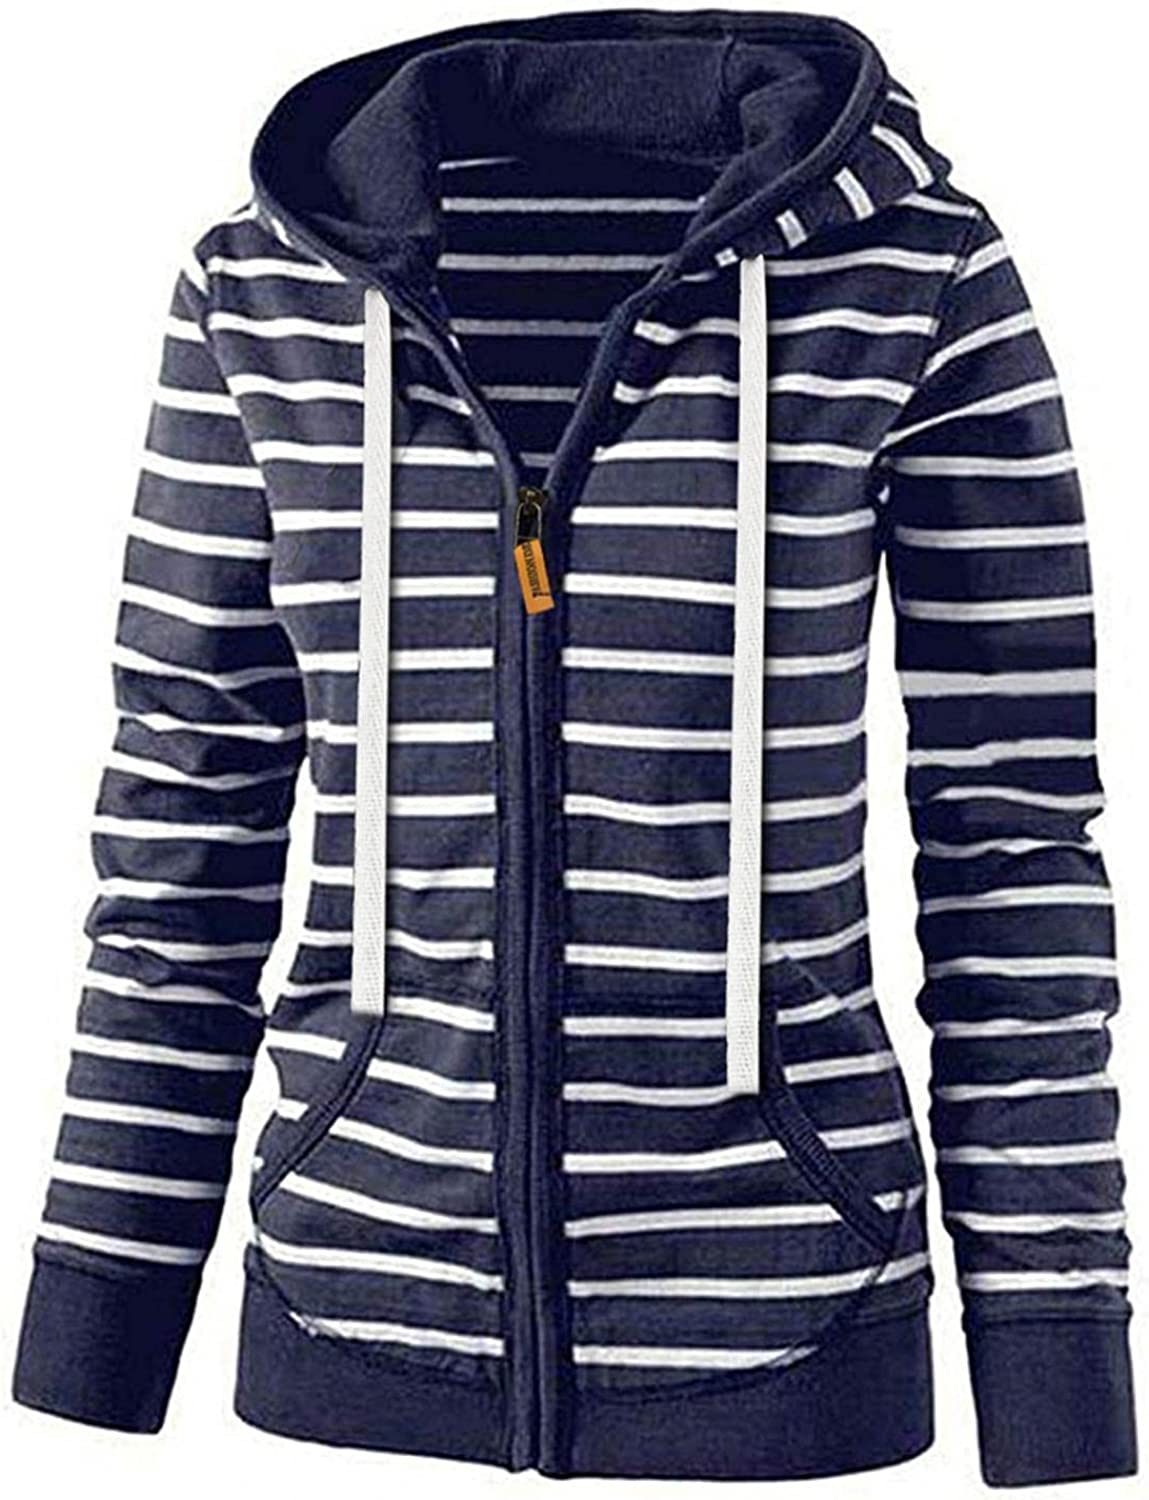 ORT Womens Y2k Zip Up Hoodies Striped Printed Graphic Oversized Pullovers Sweatshirt Jacket with Pockets